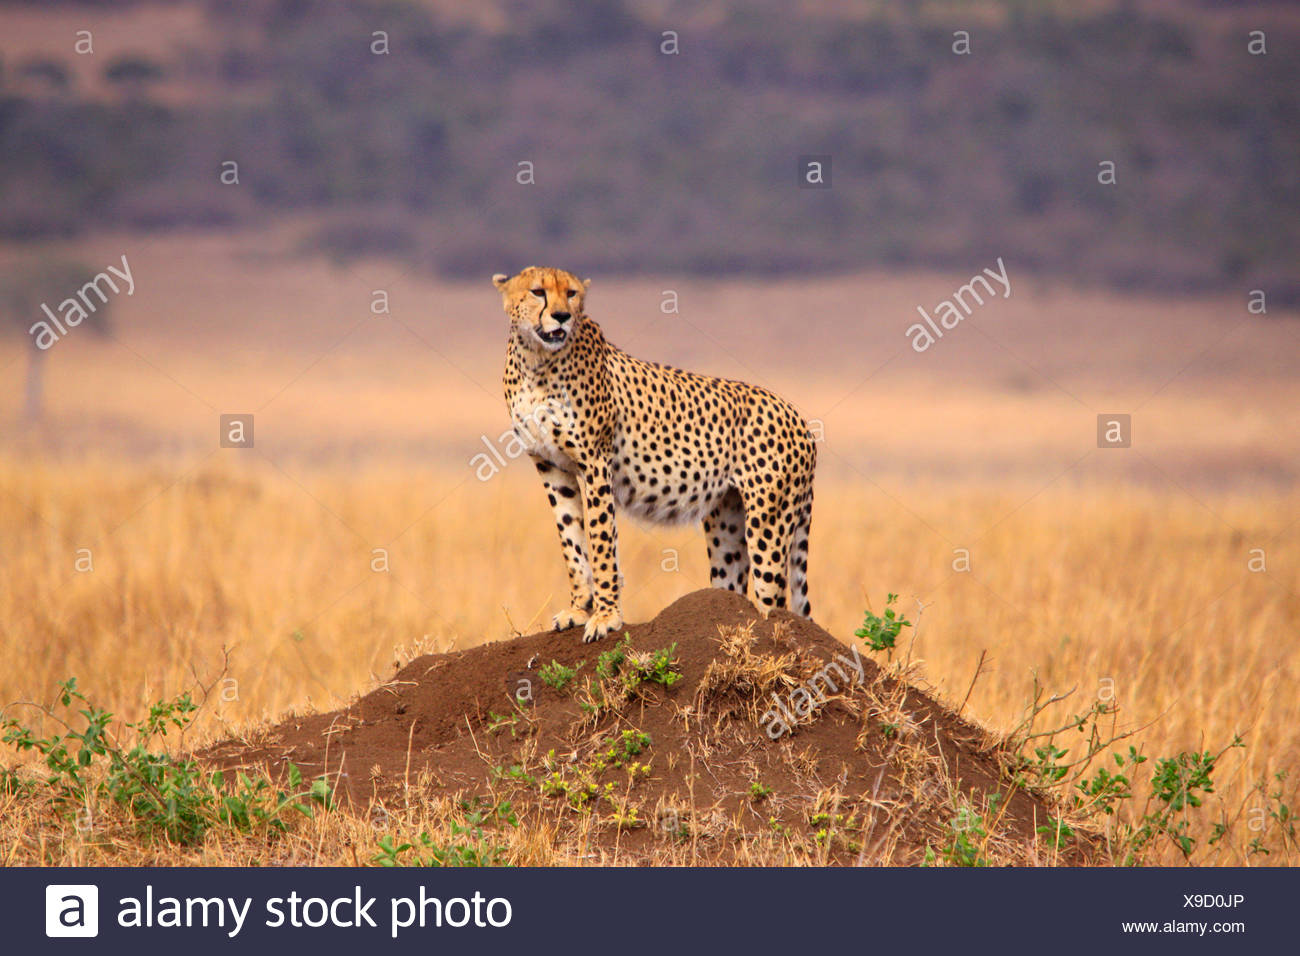 cheetah (Acinonyx jubatus), on a mound looking around, Tanzania, Serengeti National Park - Stock Image